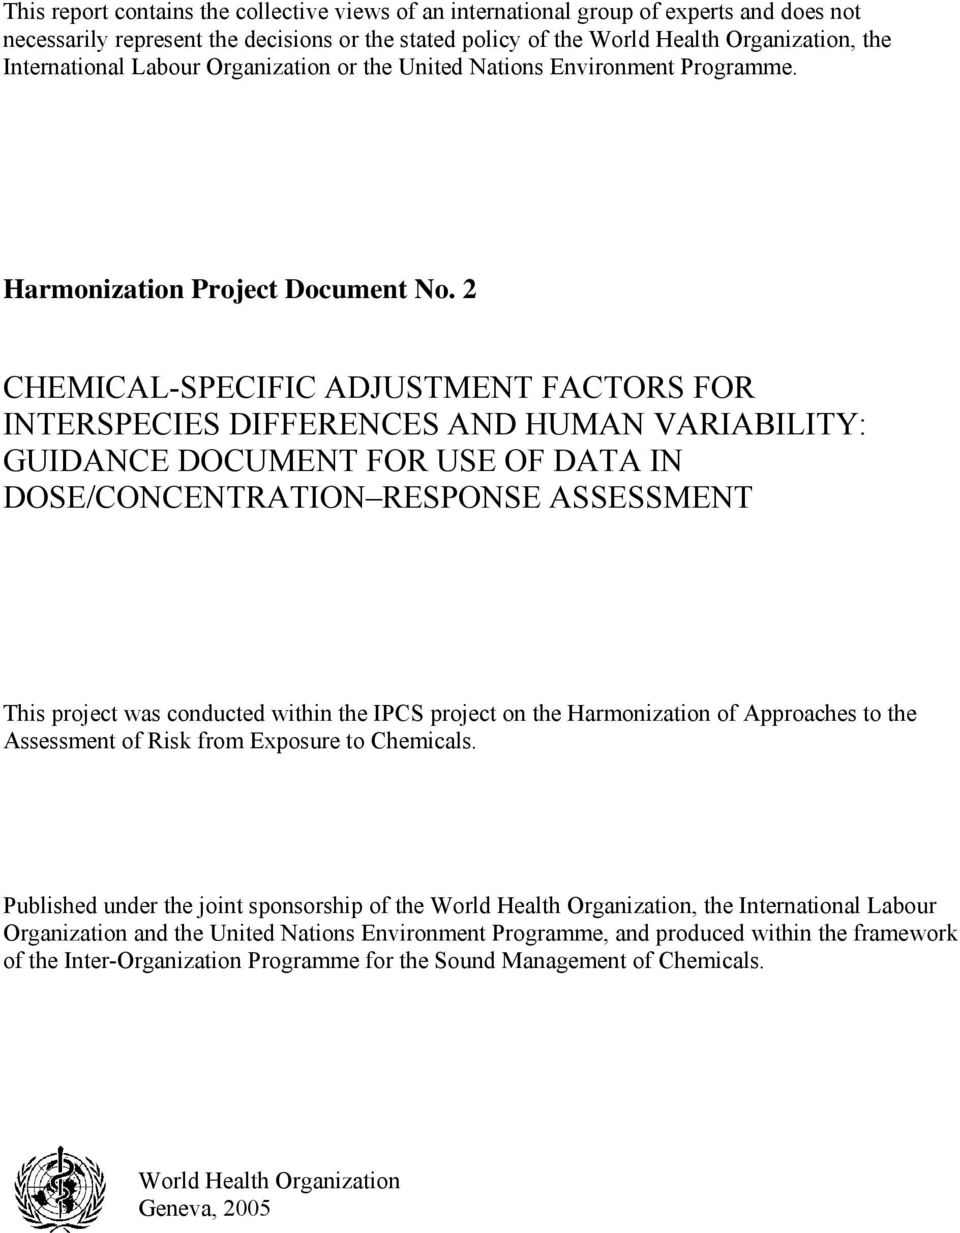 2 CHEMICAL-SPECIFIC ADJUSTMENT FACTORS FOR INTERSPECIES DIFFERENCES AND HUMAN VARIABILITY: GUIDANCE DOCUMENT FOR USE OF DATA IN DOSE/CONCENTRATION RESPONSE ASSESSMENT This project was conducted